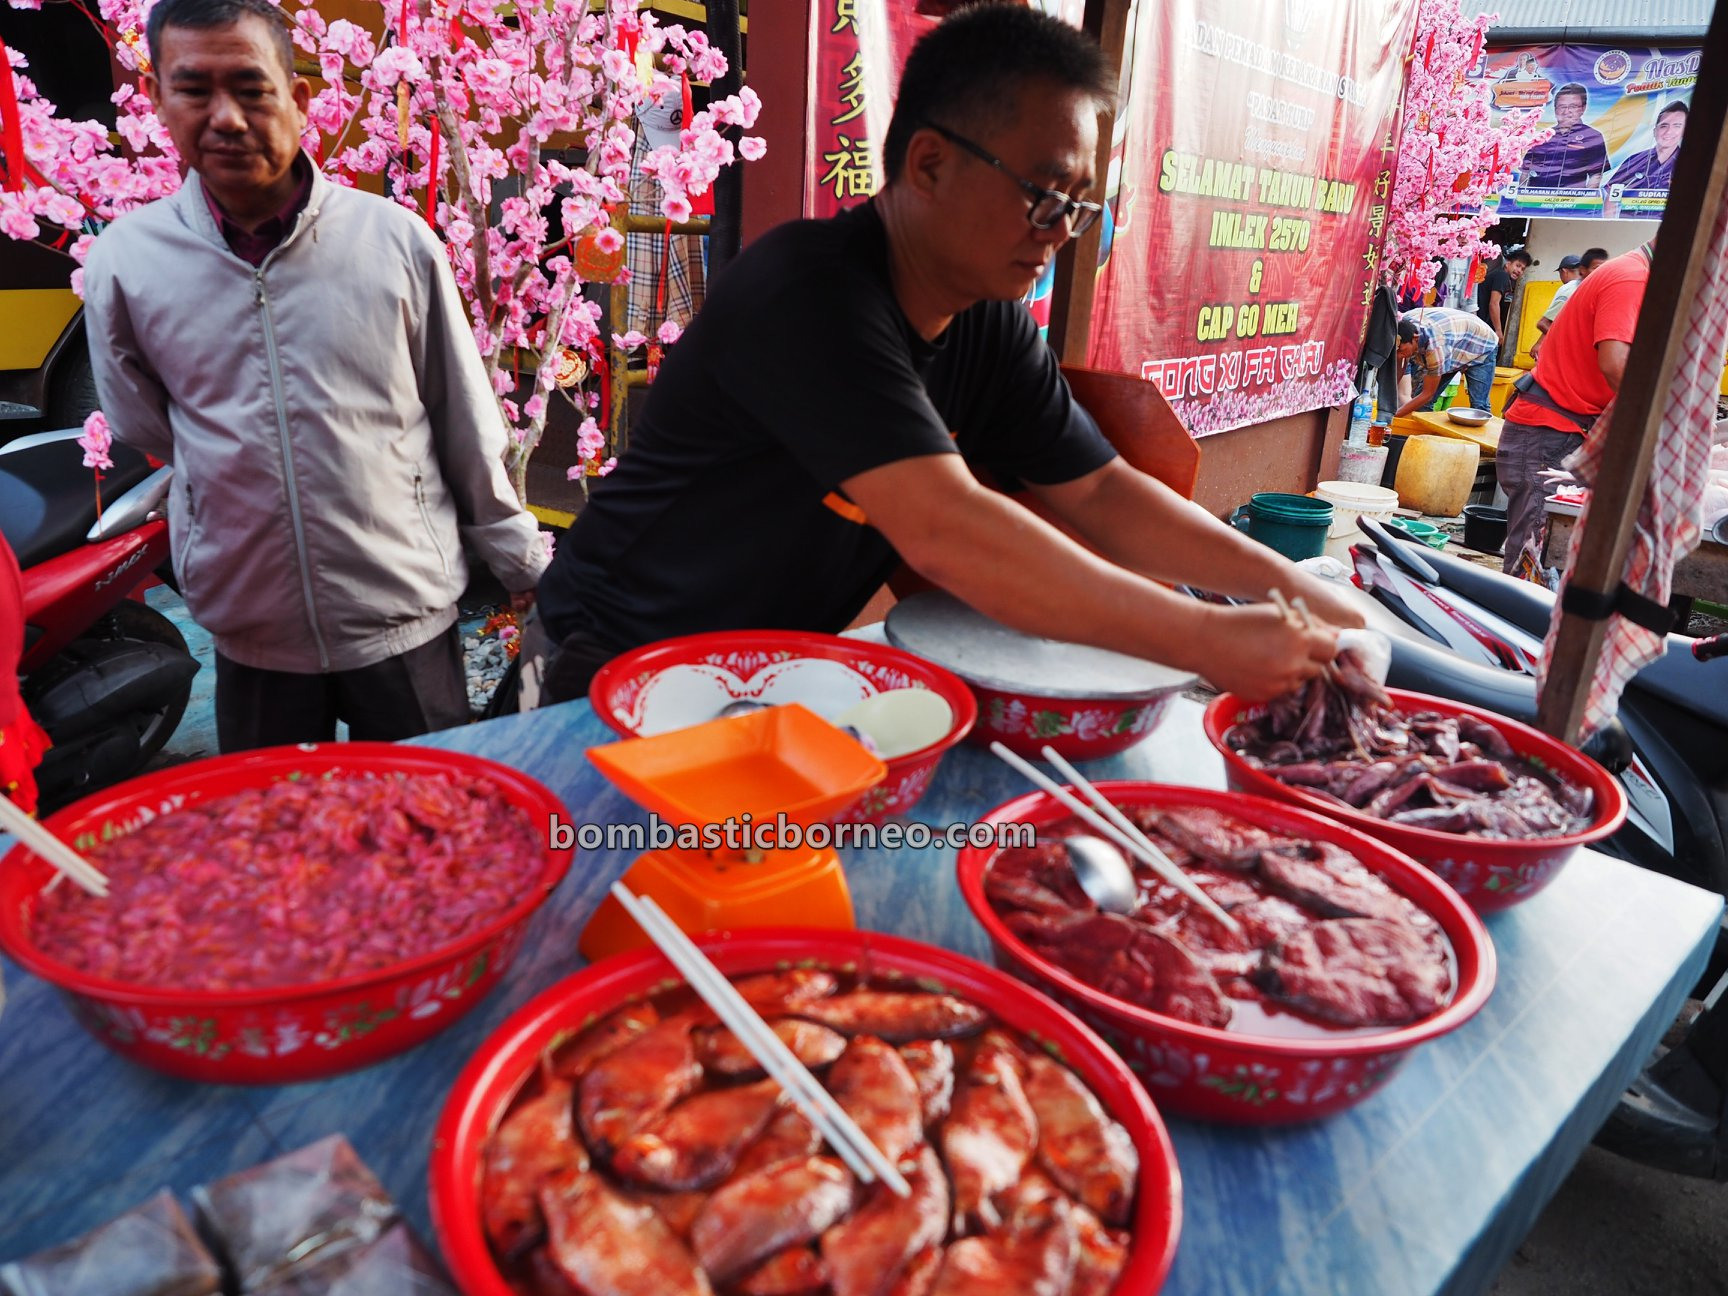 Pasar Turi, Local Market, authentic, traditional, destination, Indonesia, West Kalimantan, Kota Singkawang, fish, ikan, vegetable, Tourism, tourist attraction, travel guide, Borneo